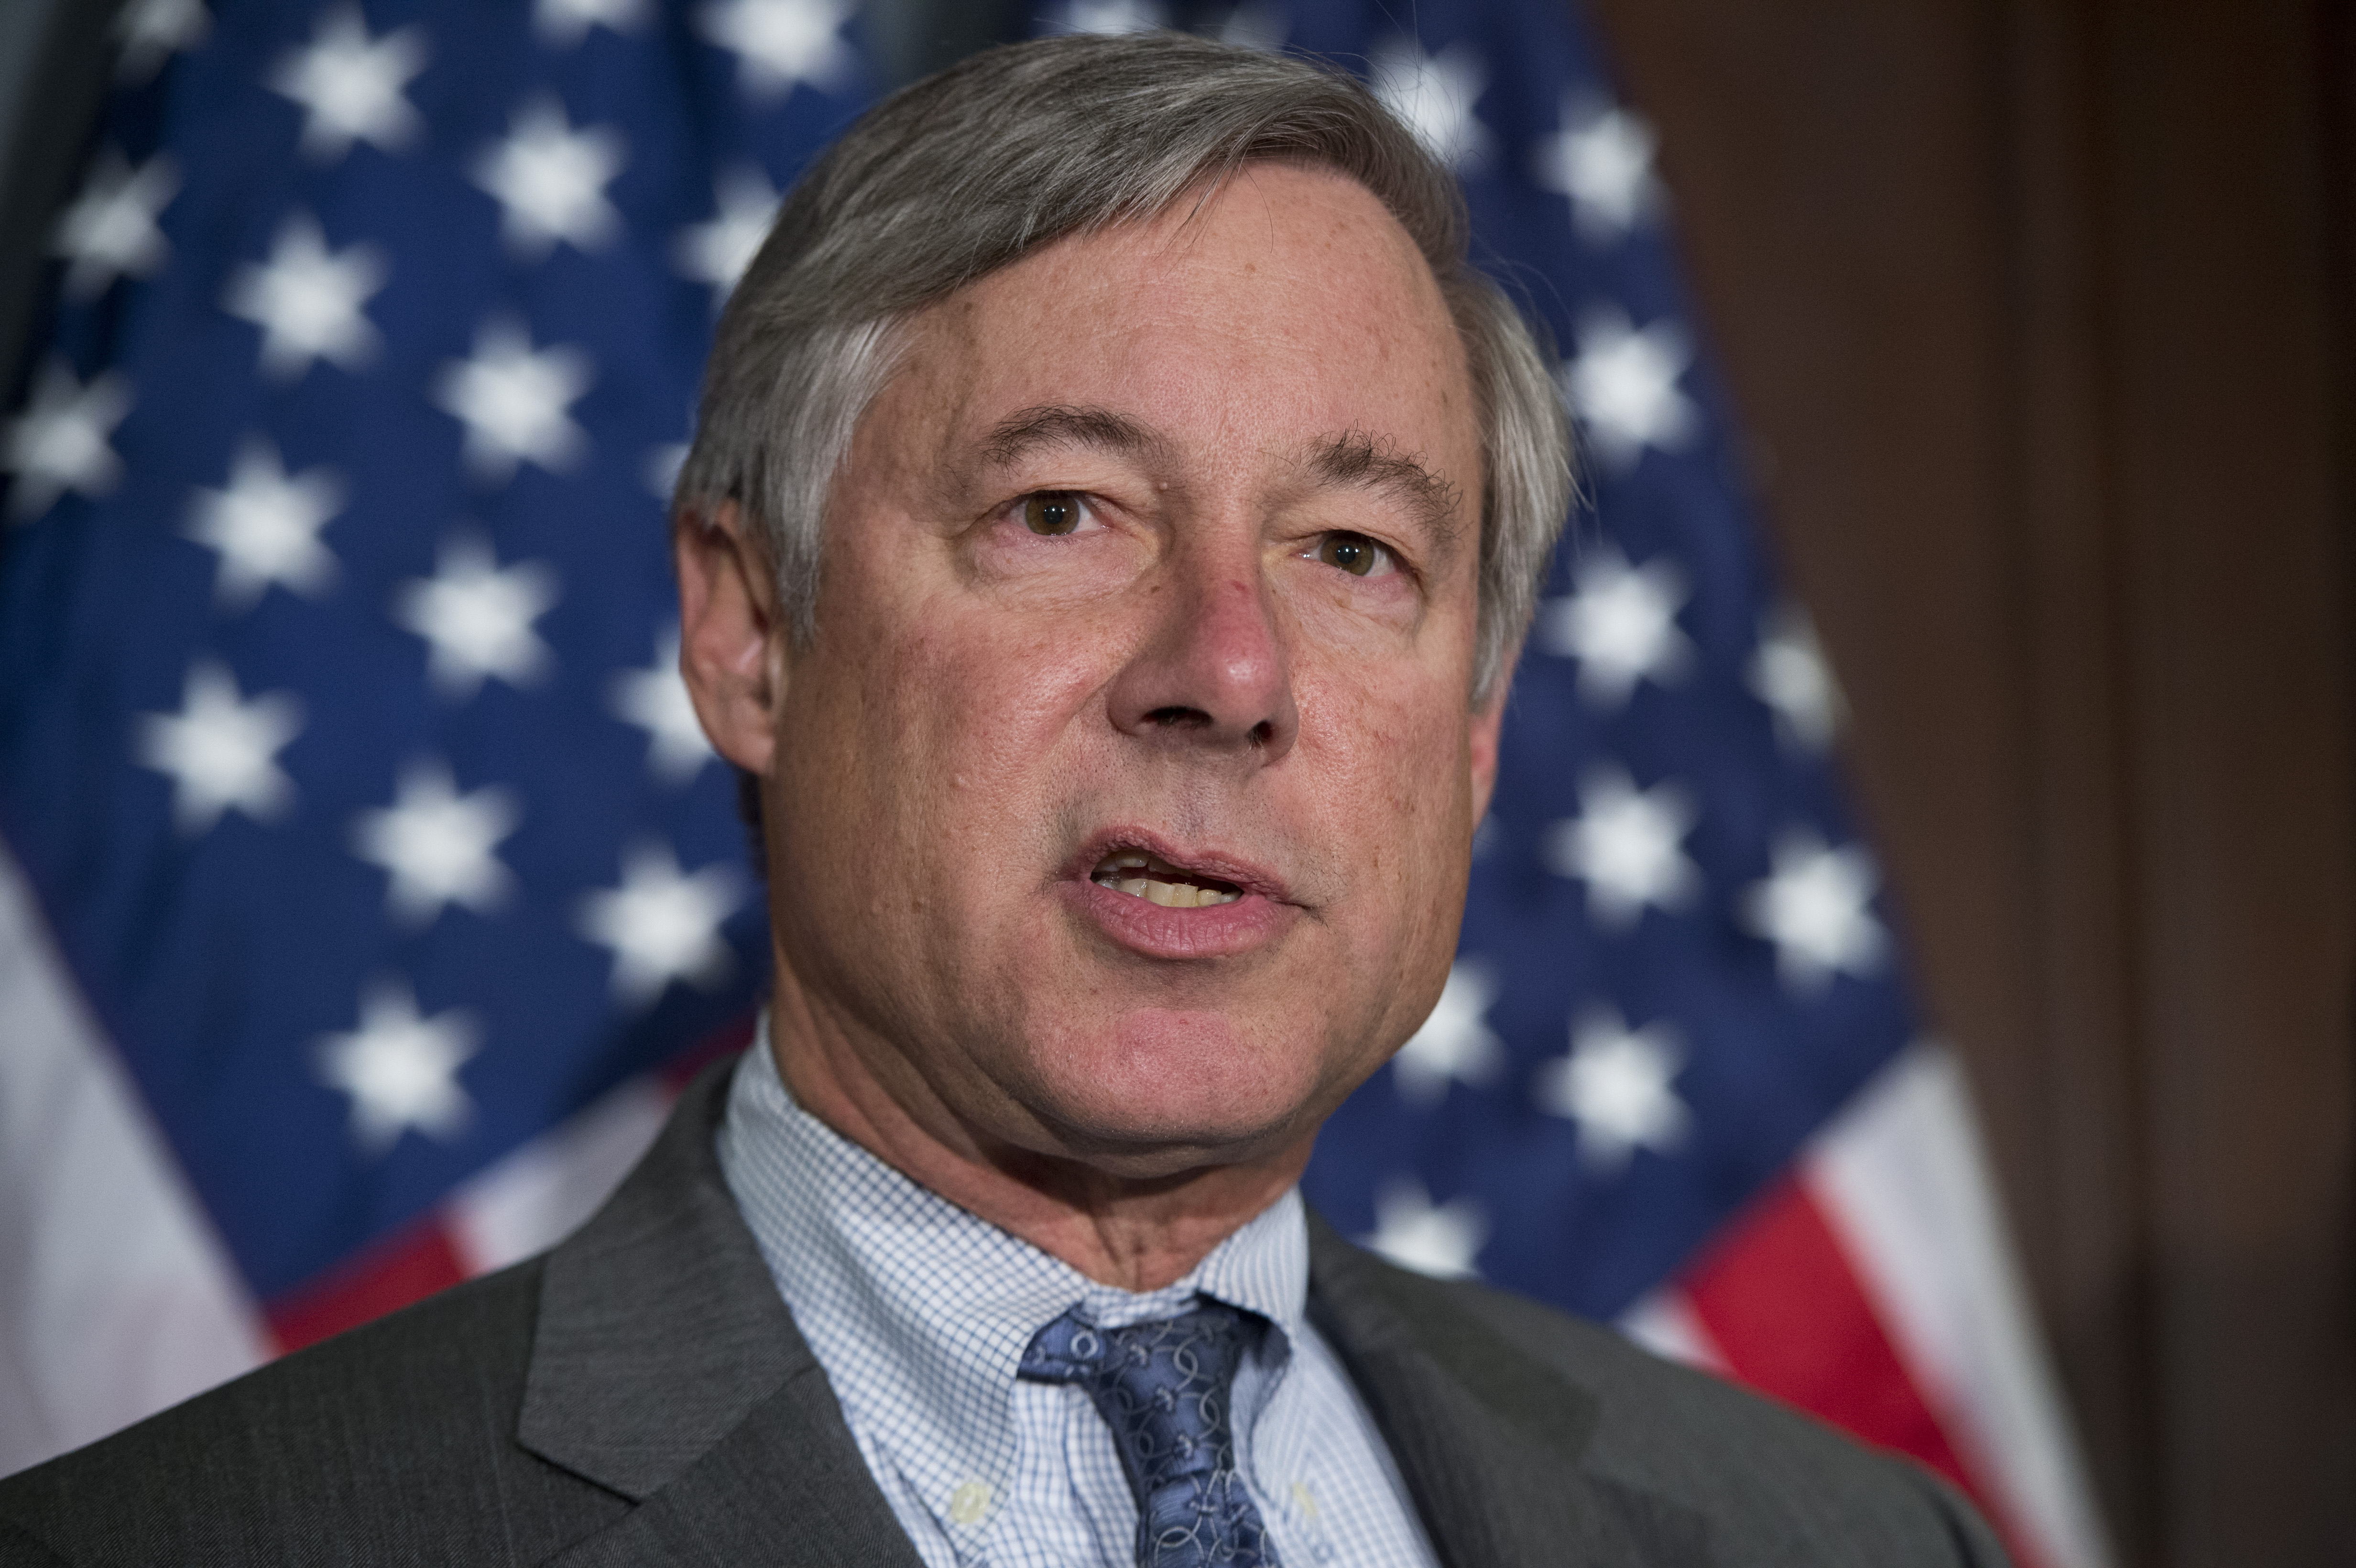 """Rep. Fred Upton (R-MI), who once called network neutrality a """"solution in search of a problem,"""" is now sponsoring network neutrality legislation."""